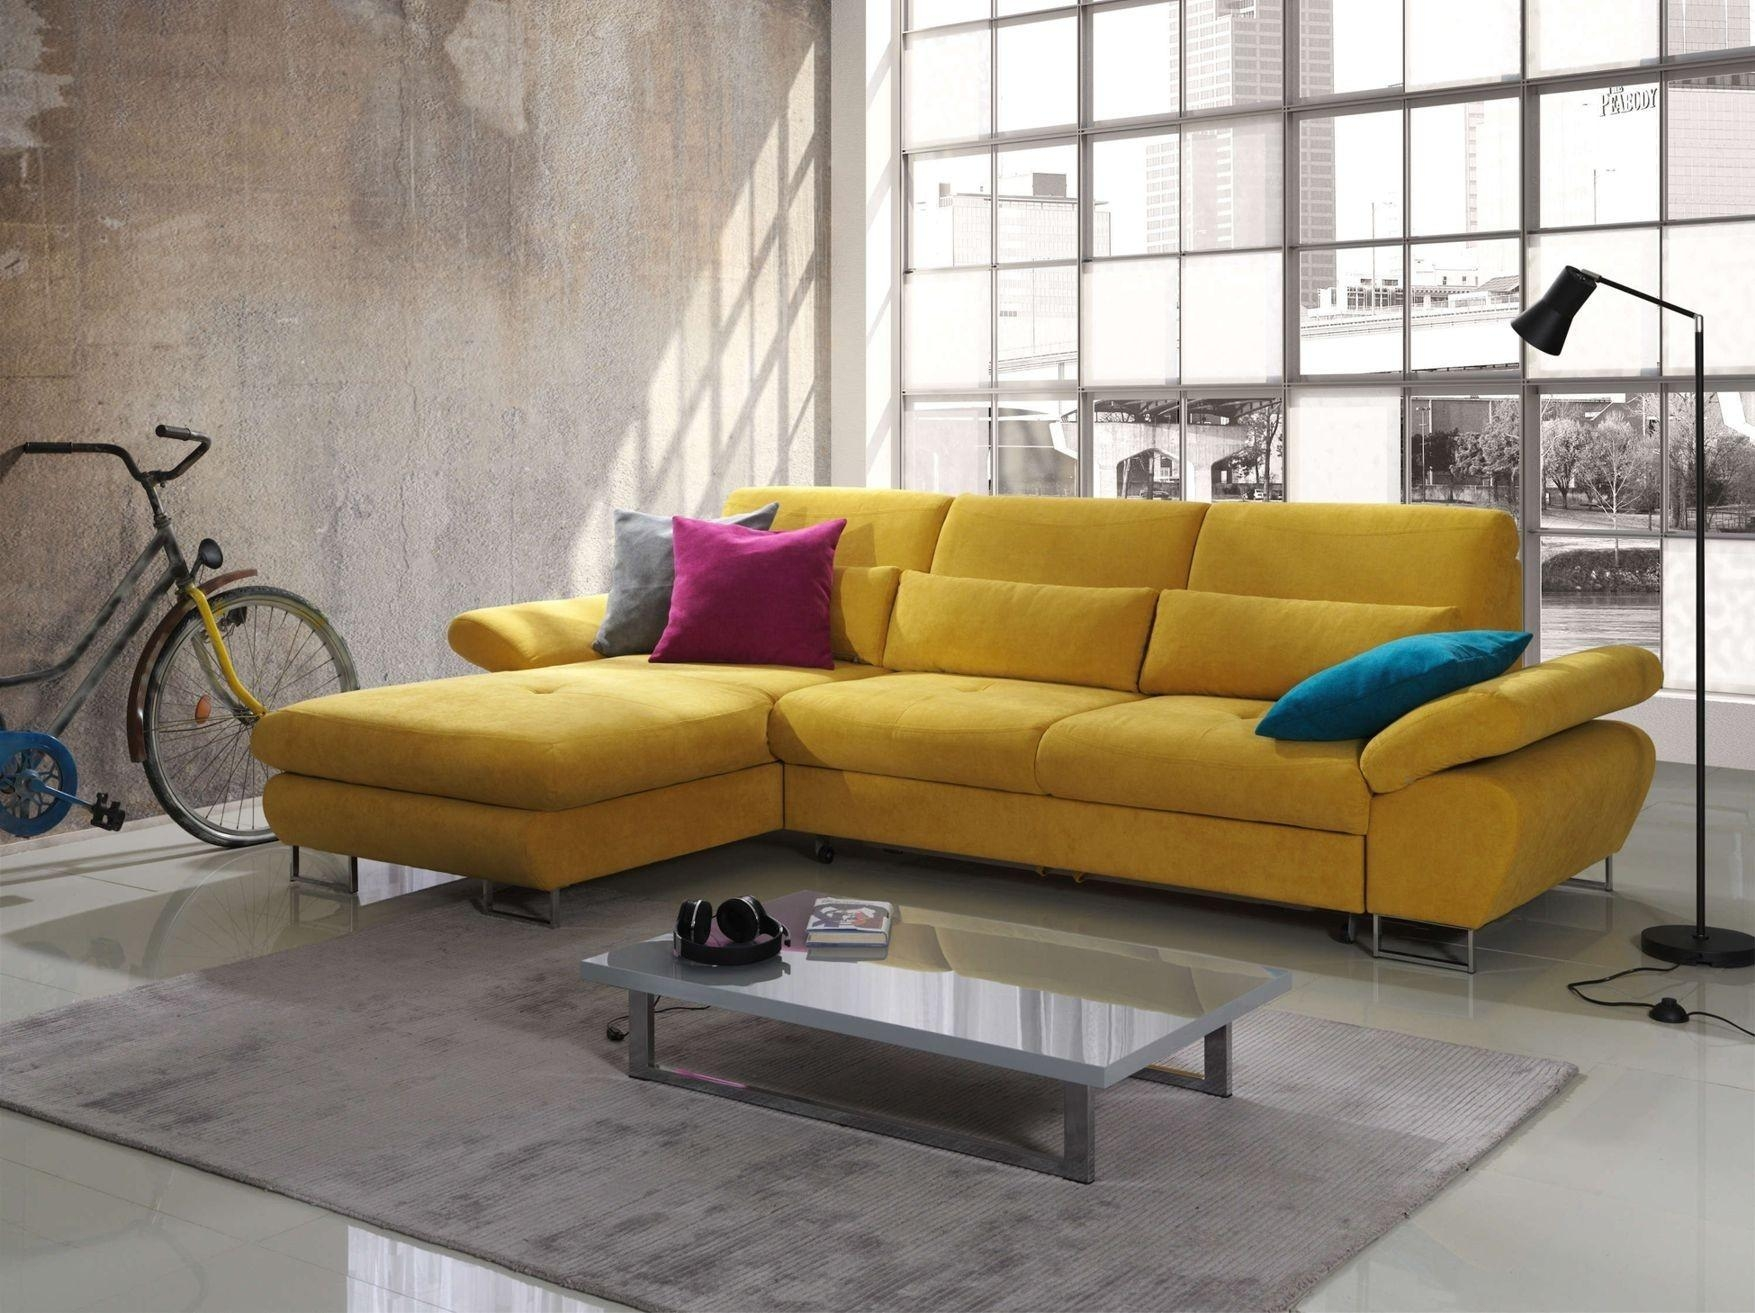 Good Apartment Sectional Sofa With Chaise 56 For Sectional Sofas Within Sectional Sofas Portland (Image 2 of 20)